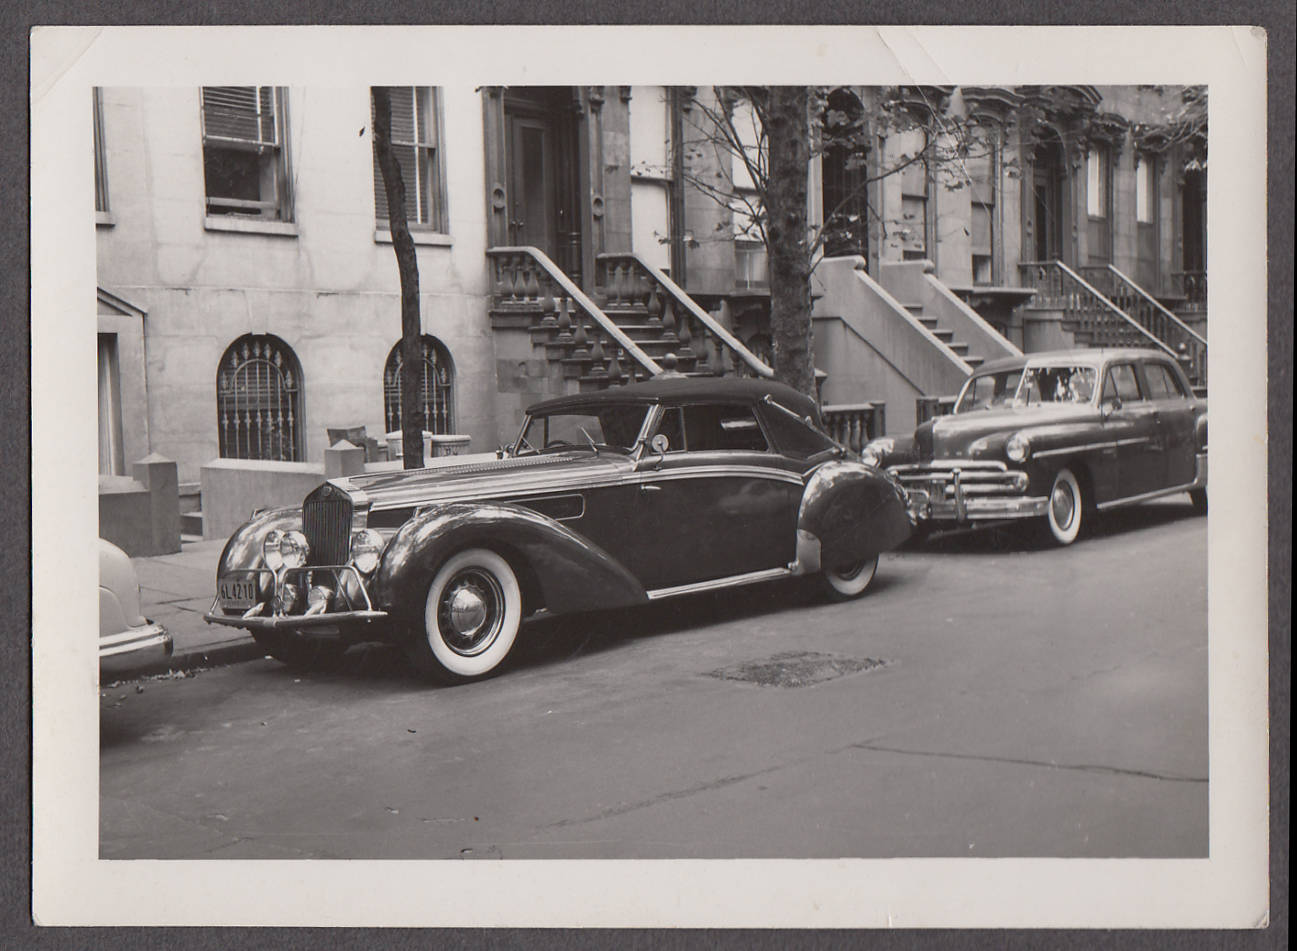 1939 Delage D8-120 snapshot NYC brownstone NY plate 6L42-10 1951